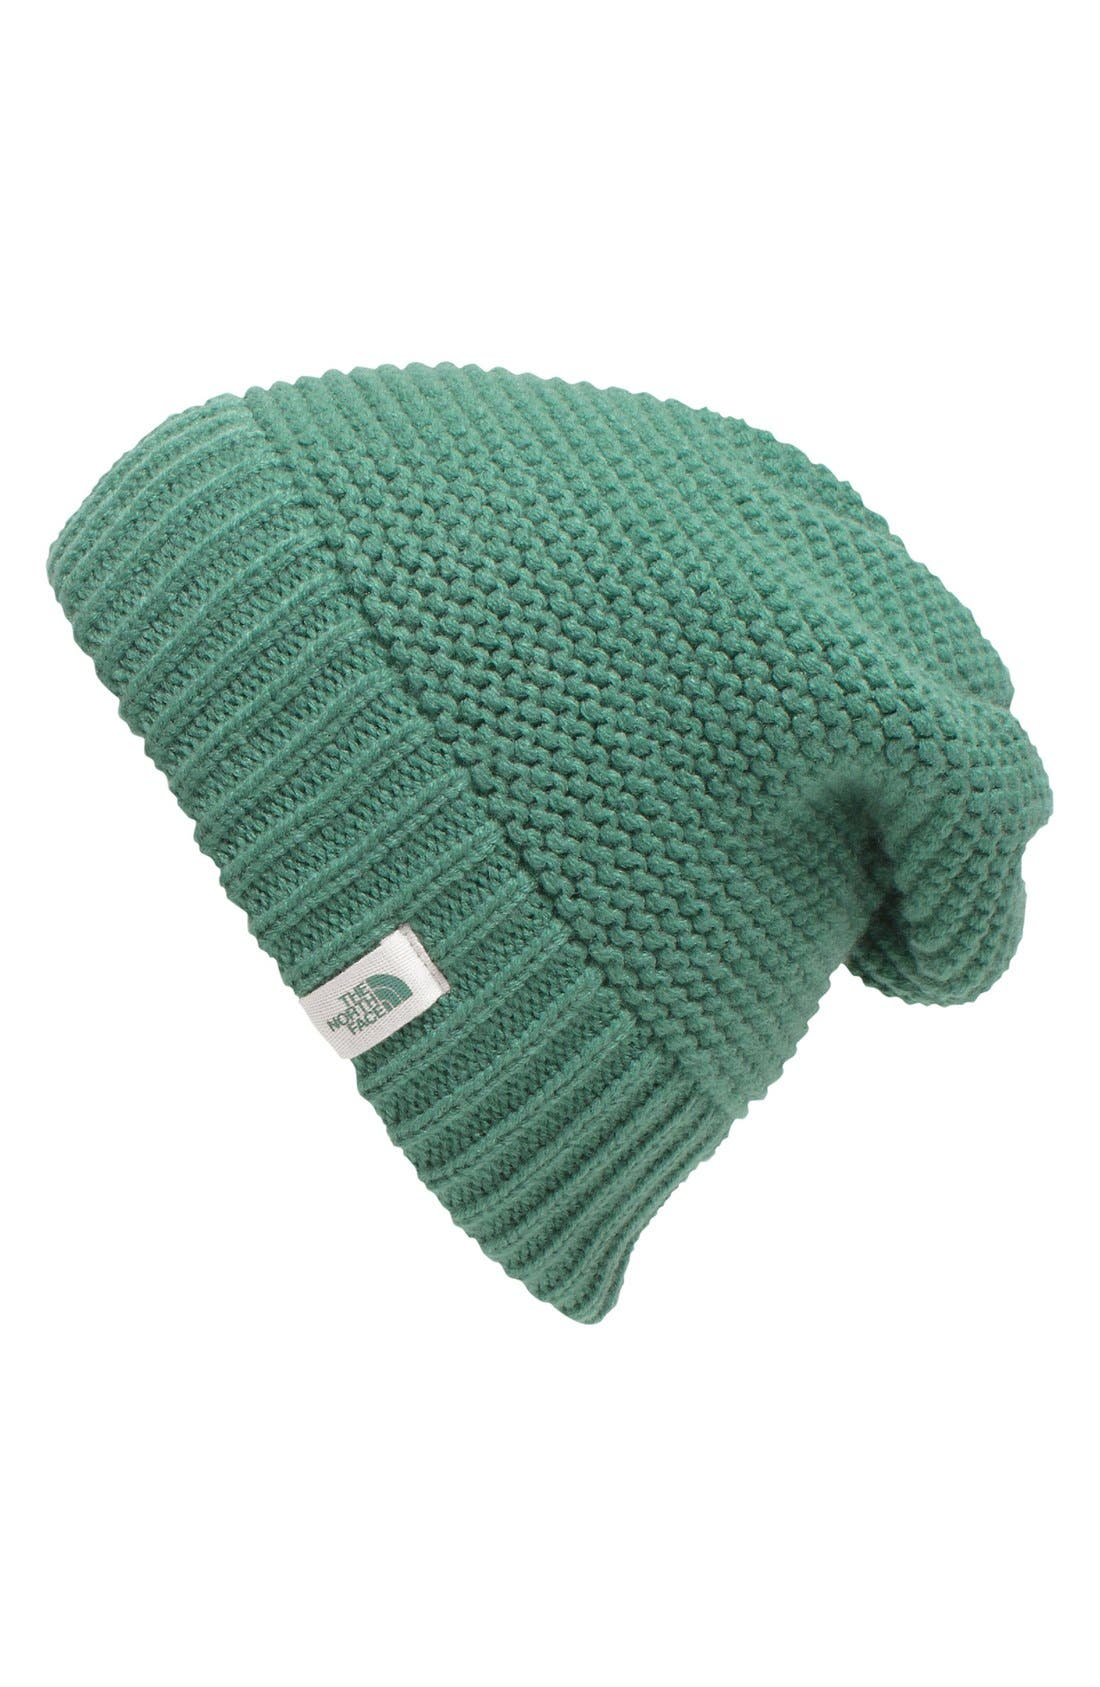 Alternate Image 1 Selected - The NorthFace 'Purrl'KnitBeanie